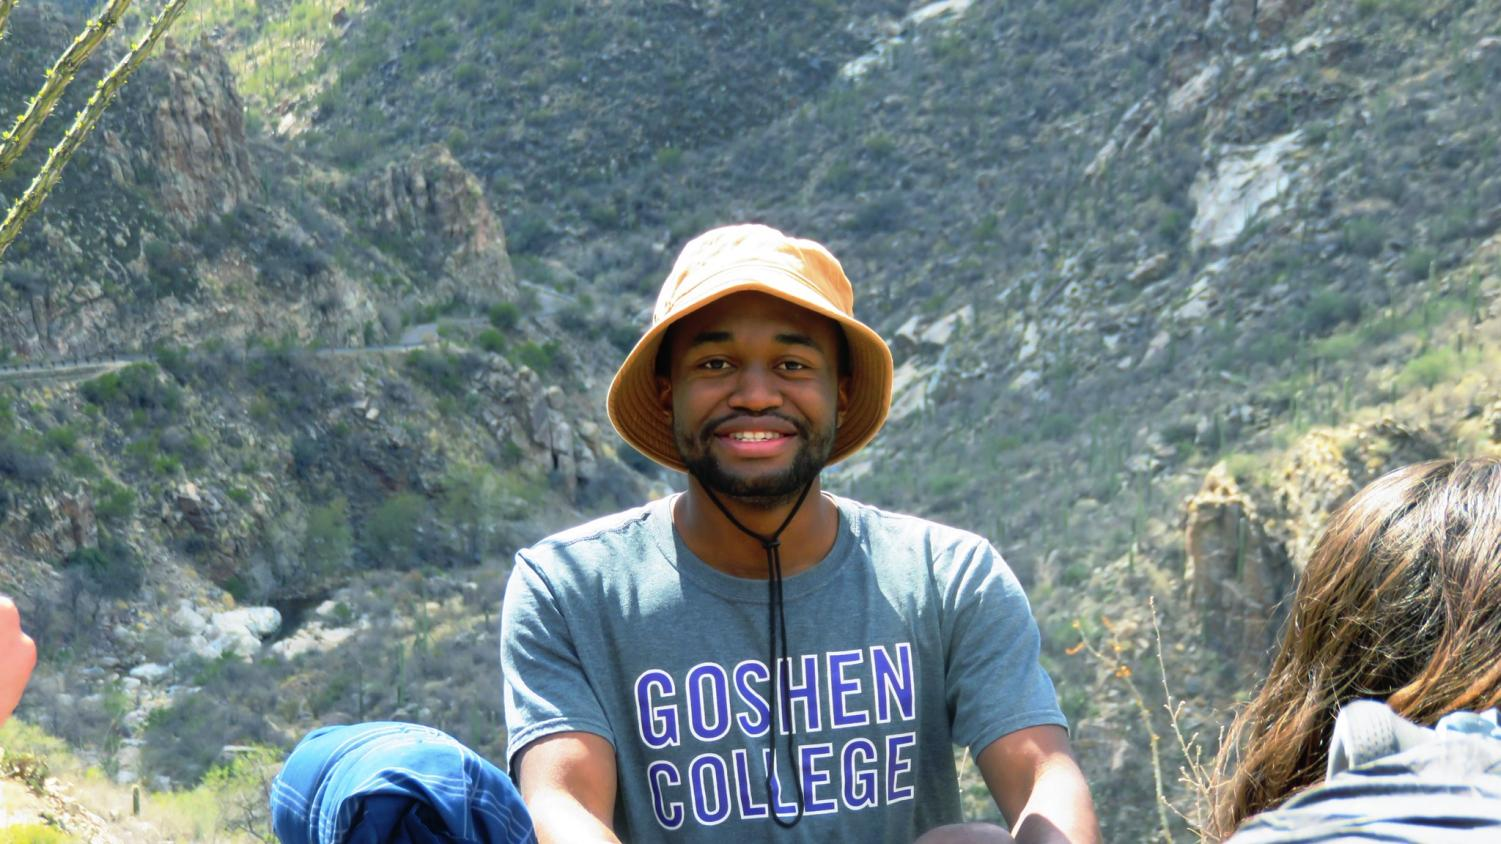 Delphin Monga is passionate about traveling, as here he enjoys a backpacking adventure in Tucson, Arizona.